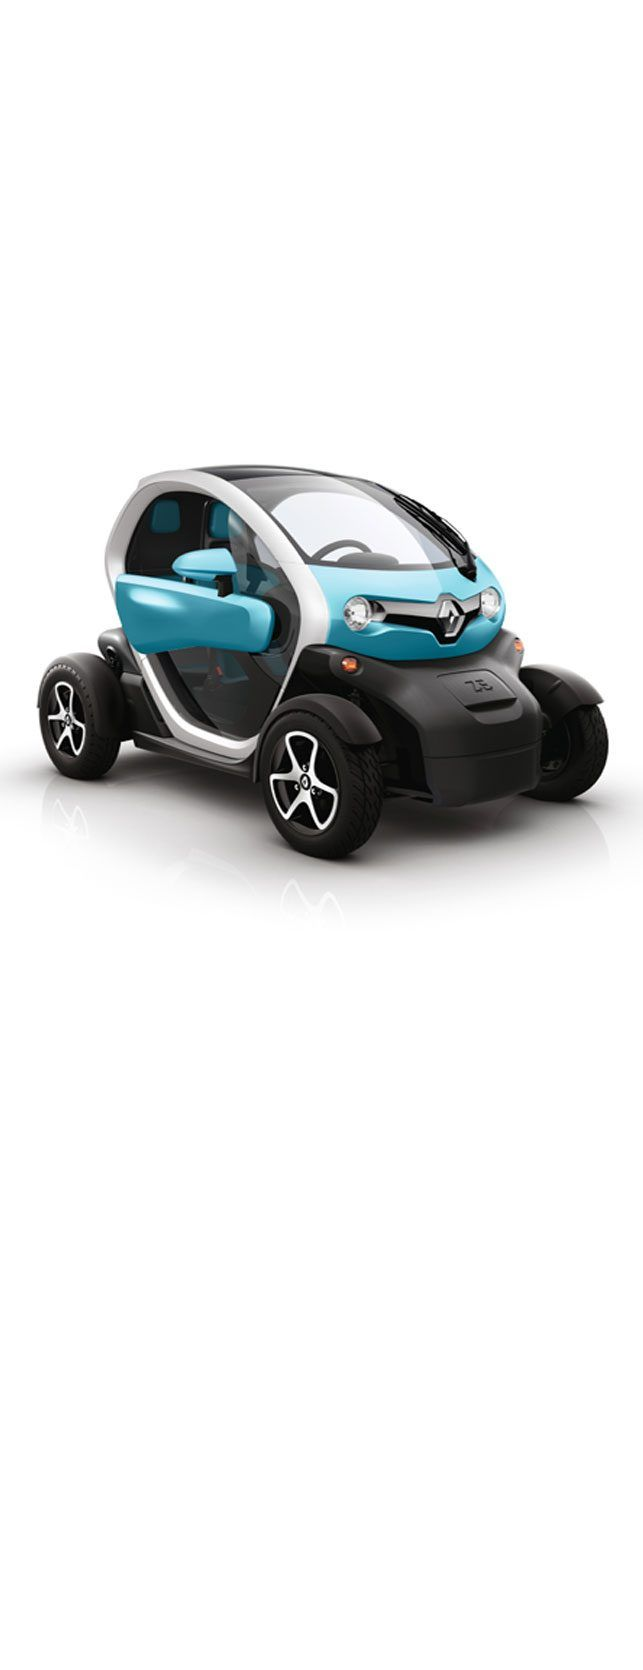 renault twizy utv xx pinterest renault electrique et vehicule. Black Bedroom Furniture Sets. Home Design Ideas